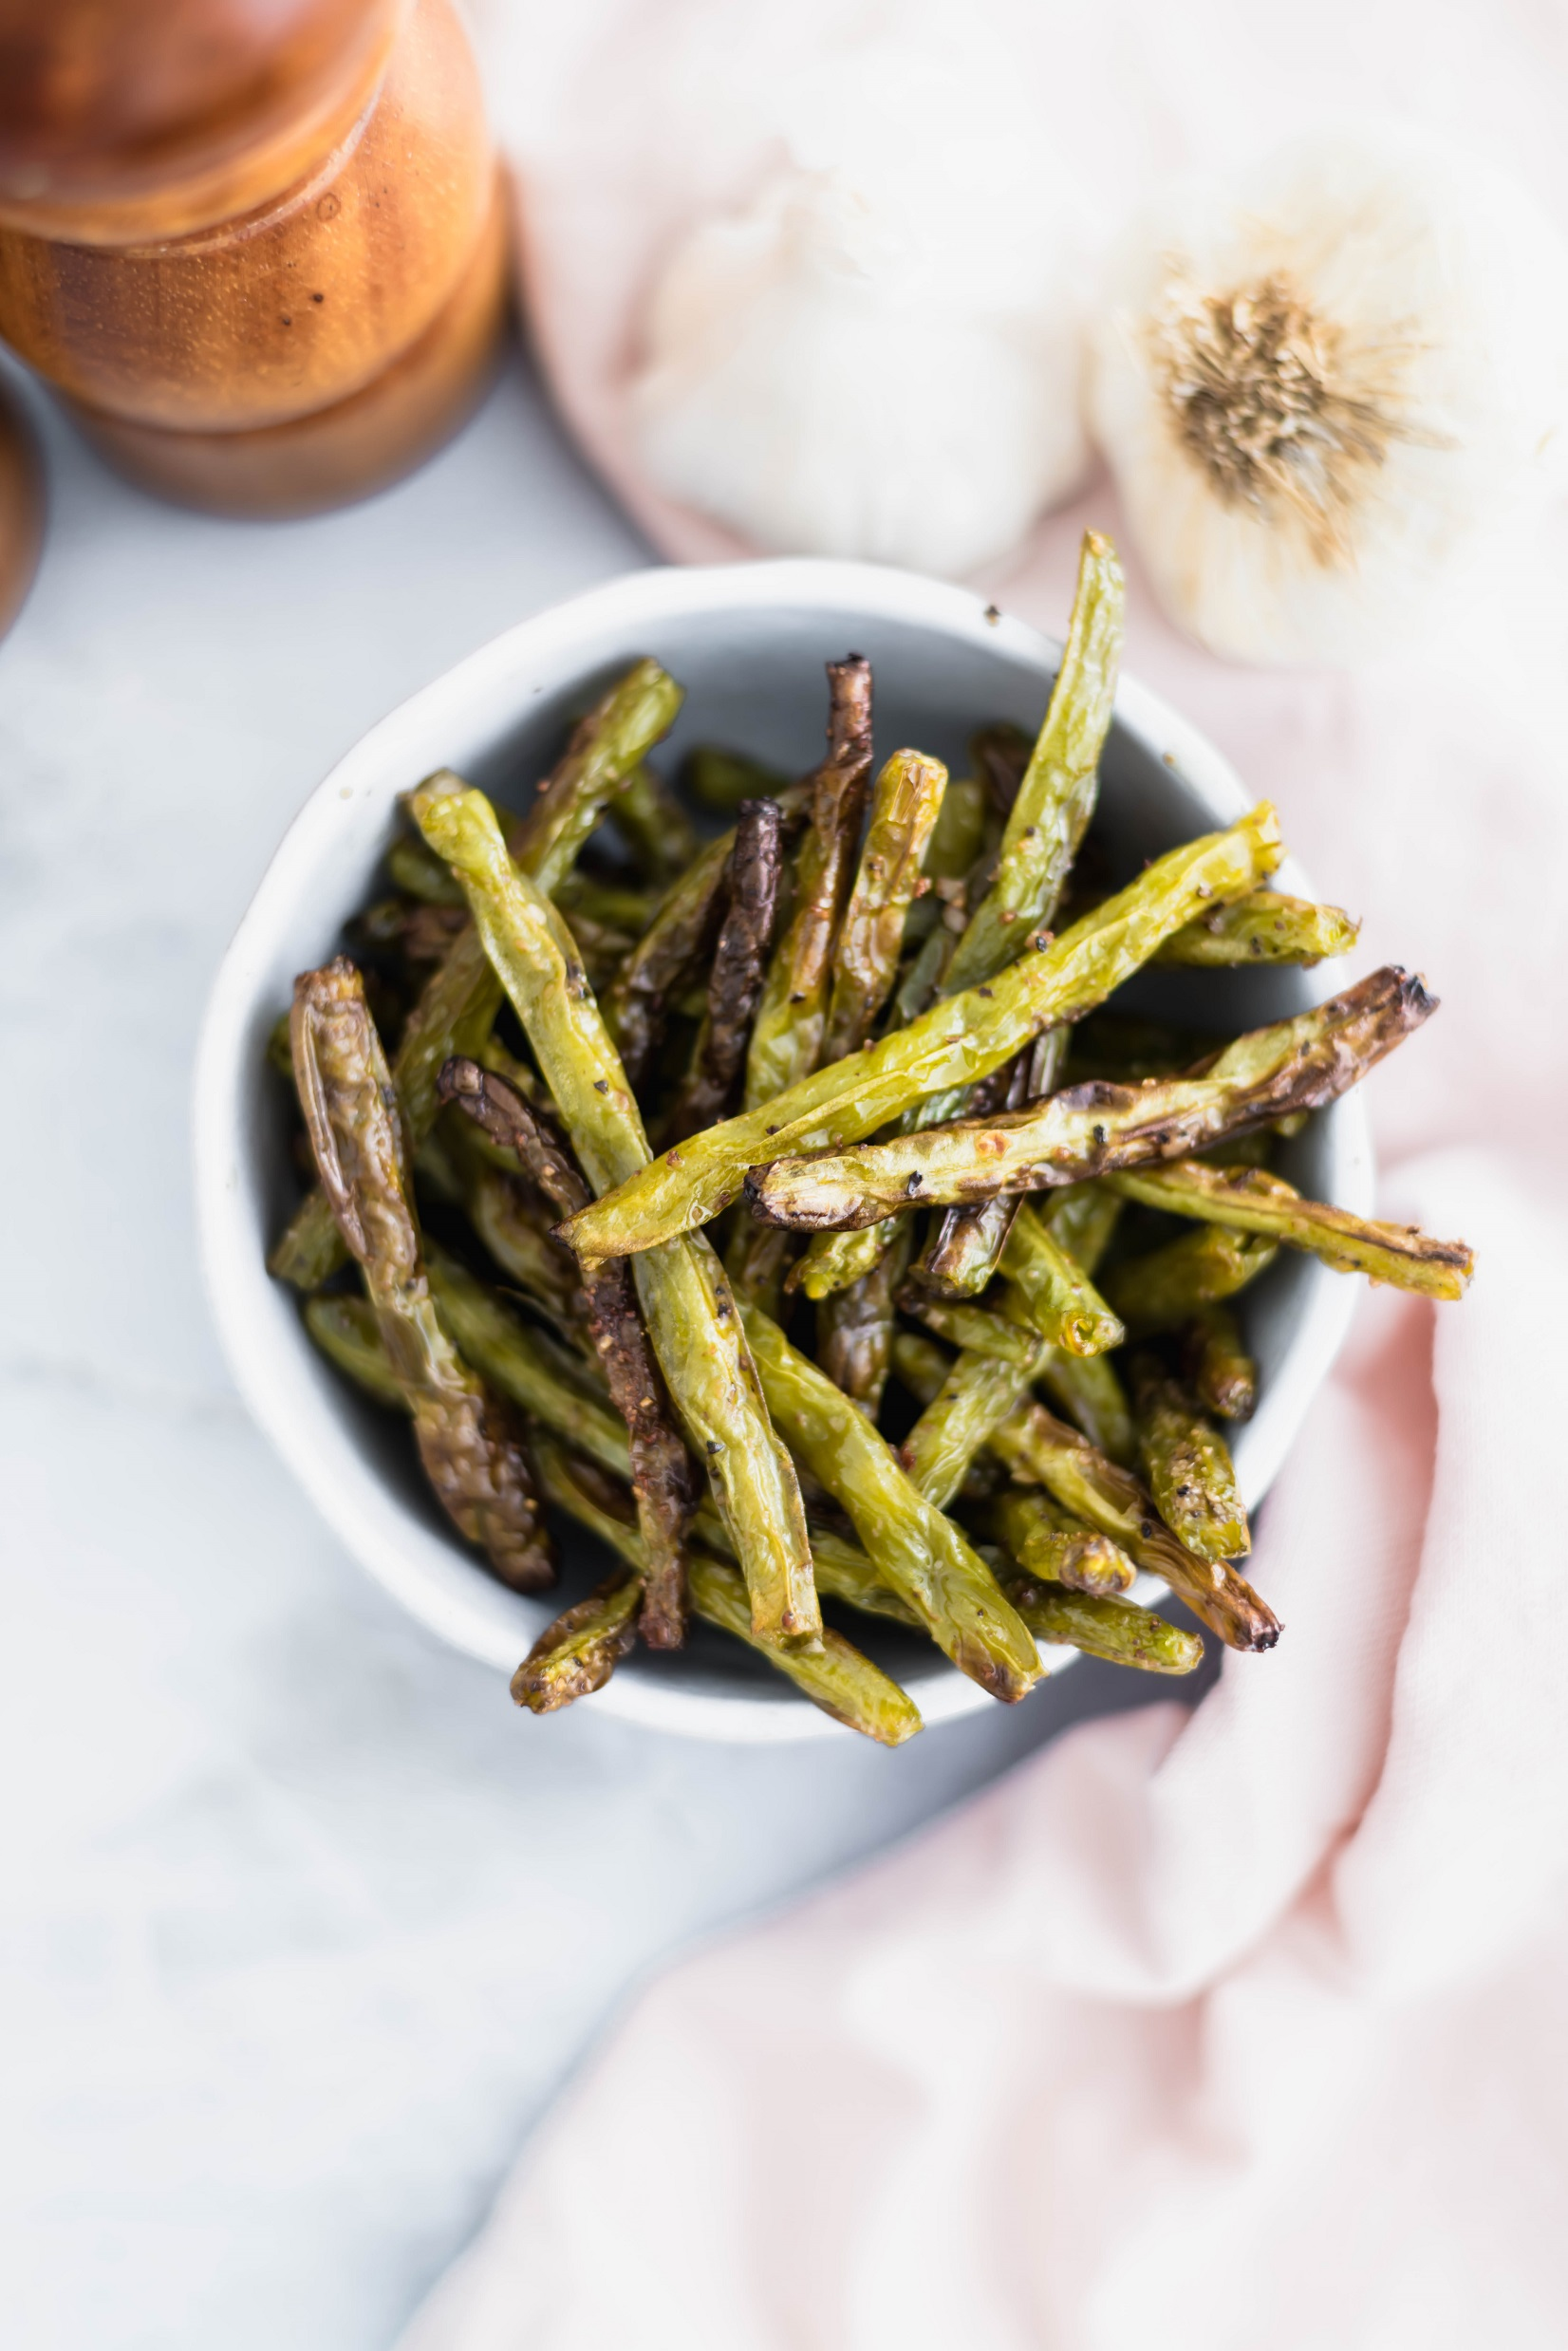 These easy Roasted Green Beans make a super easy weeknight side dish. 20 minutes from start to finish. Use fresh green beans for the most amazing flavor.